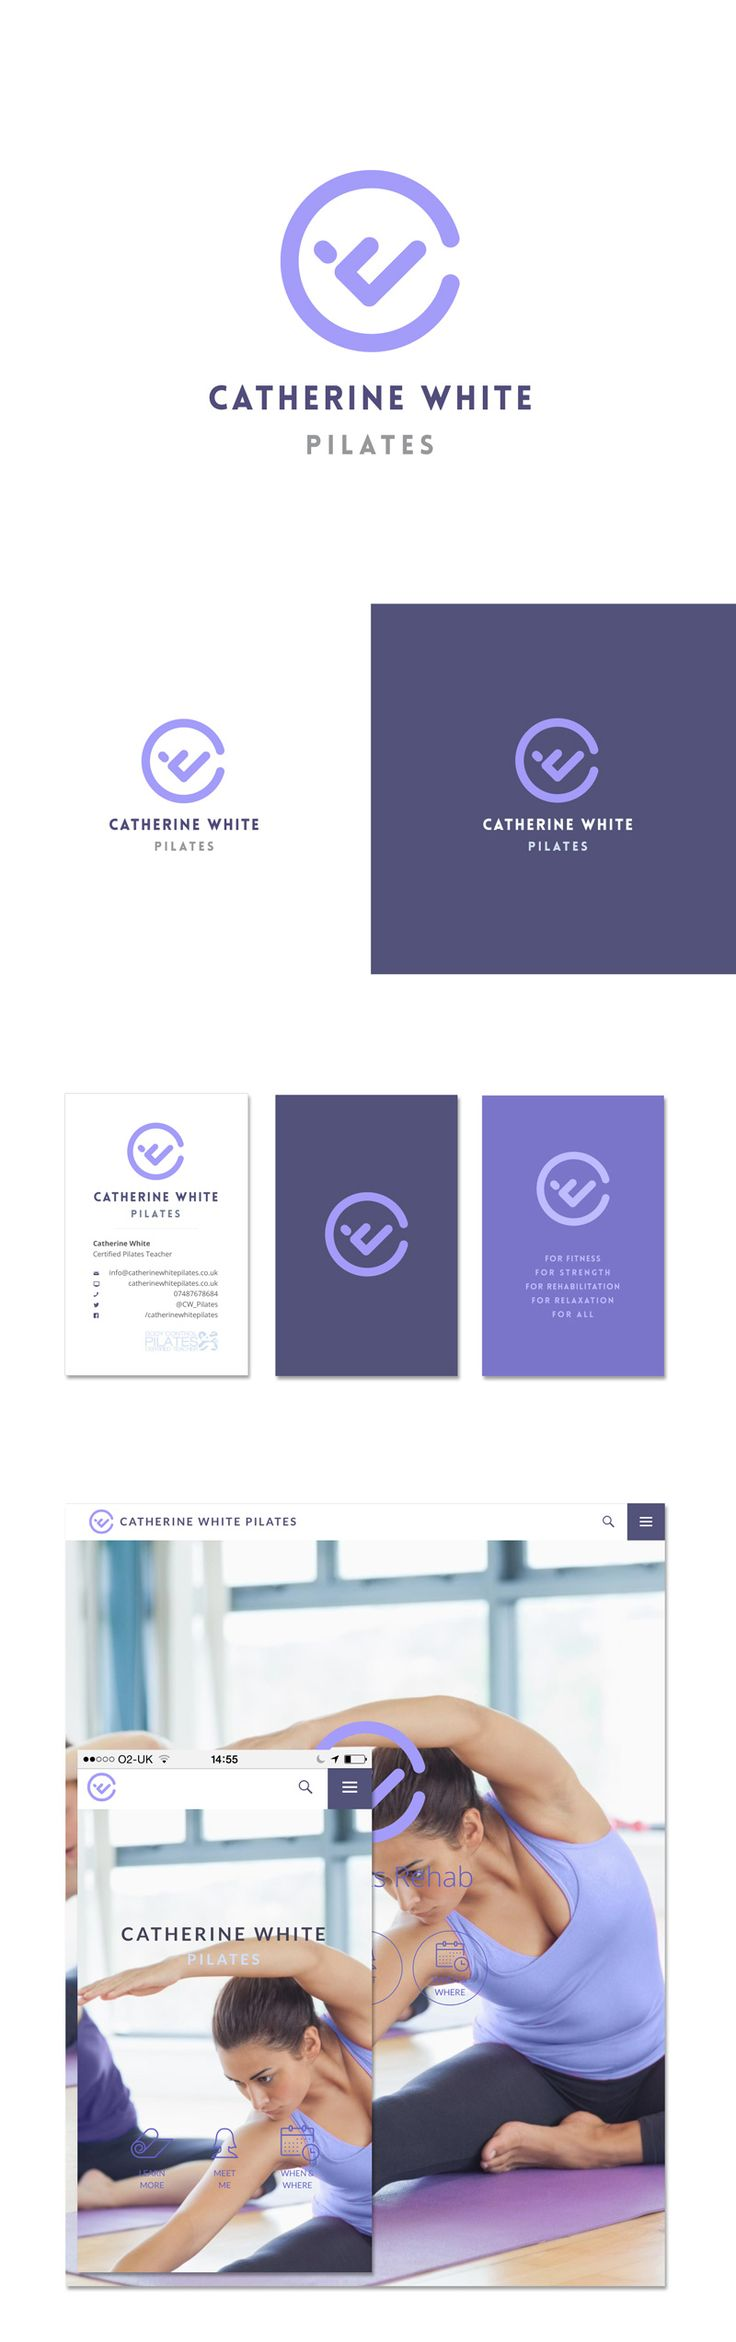 Pilates brand identity design with logo, business cards